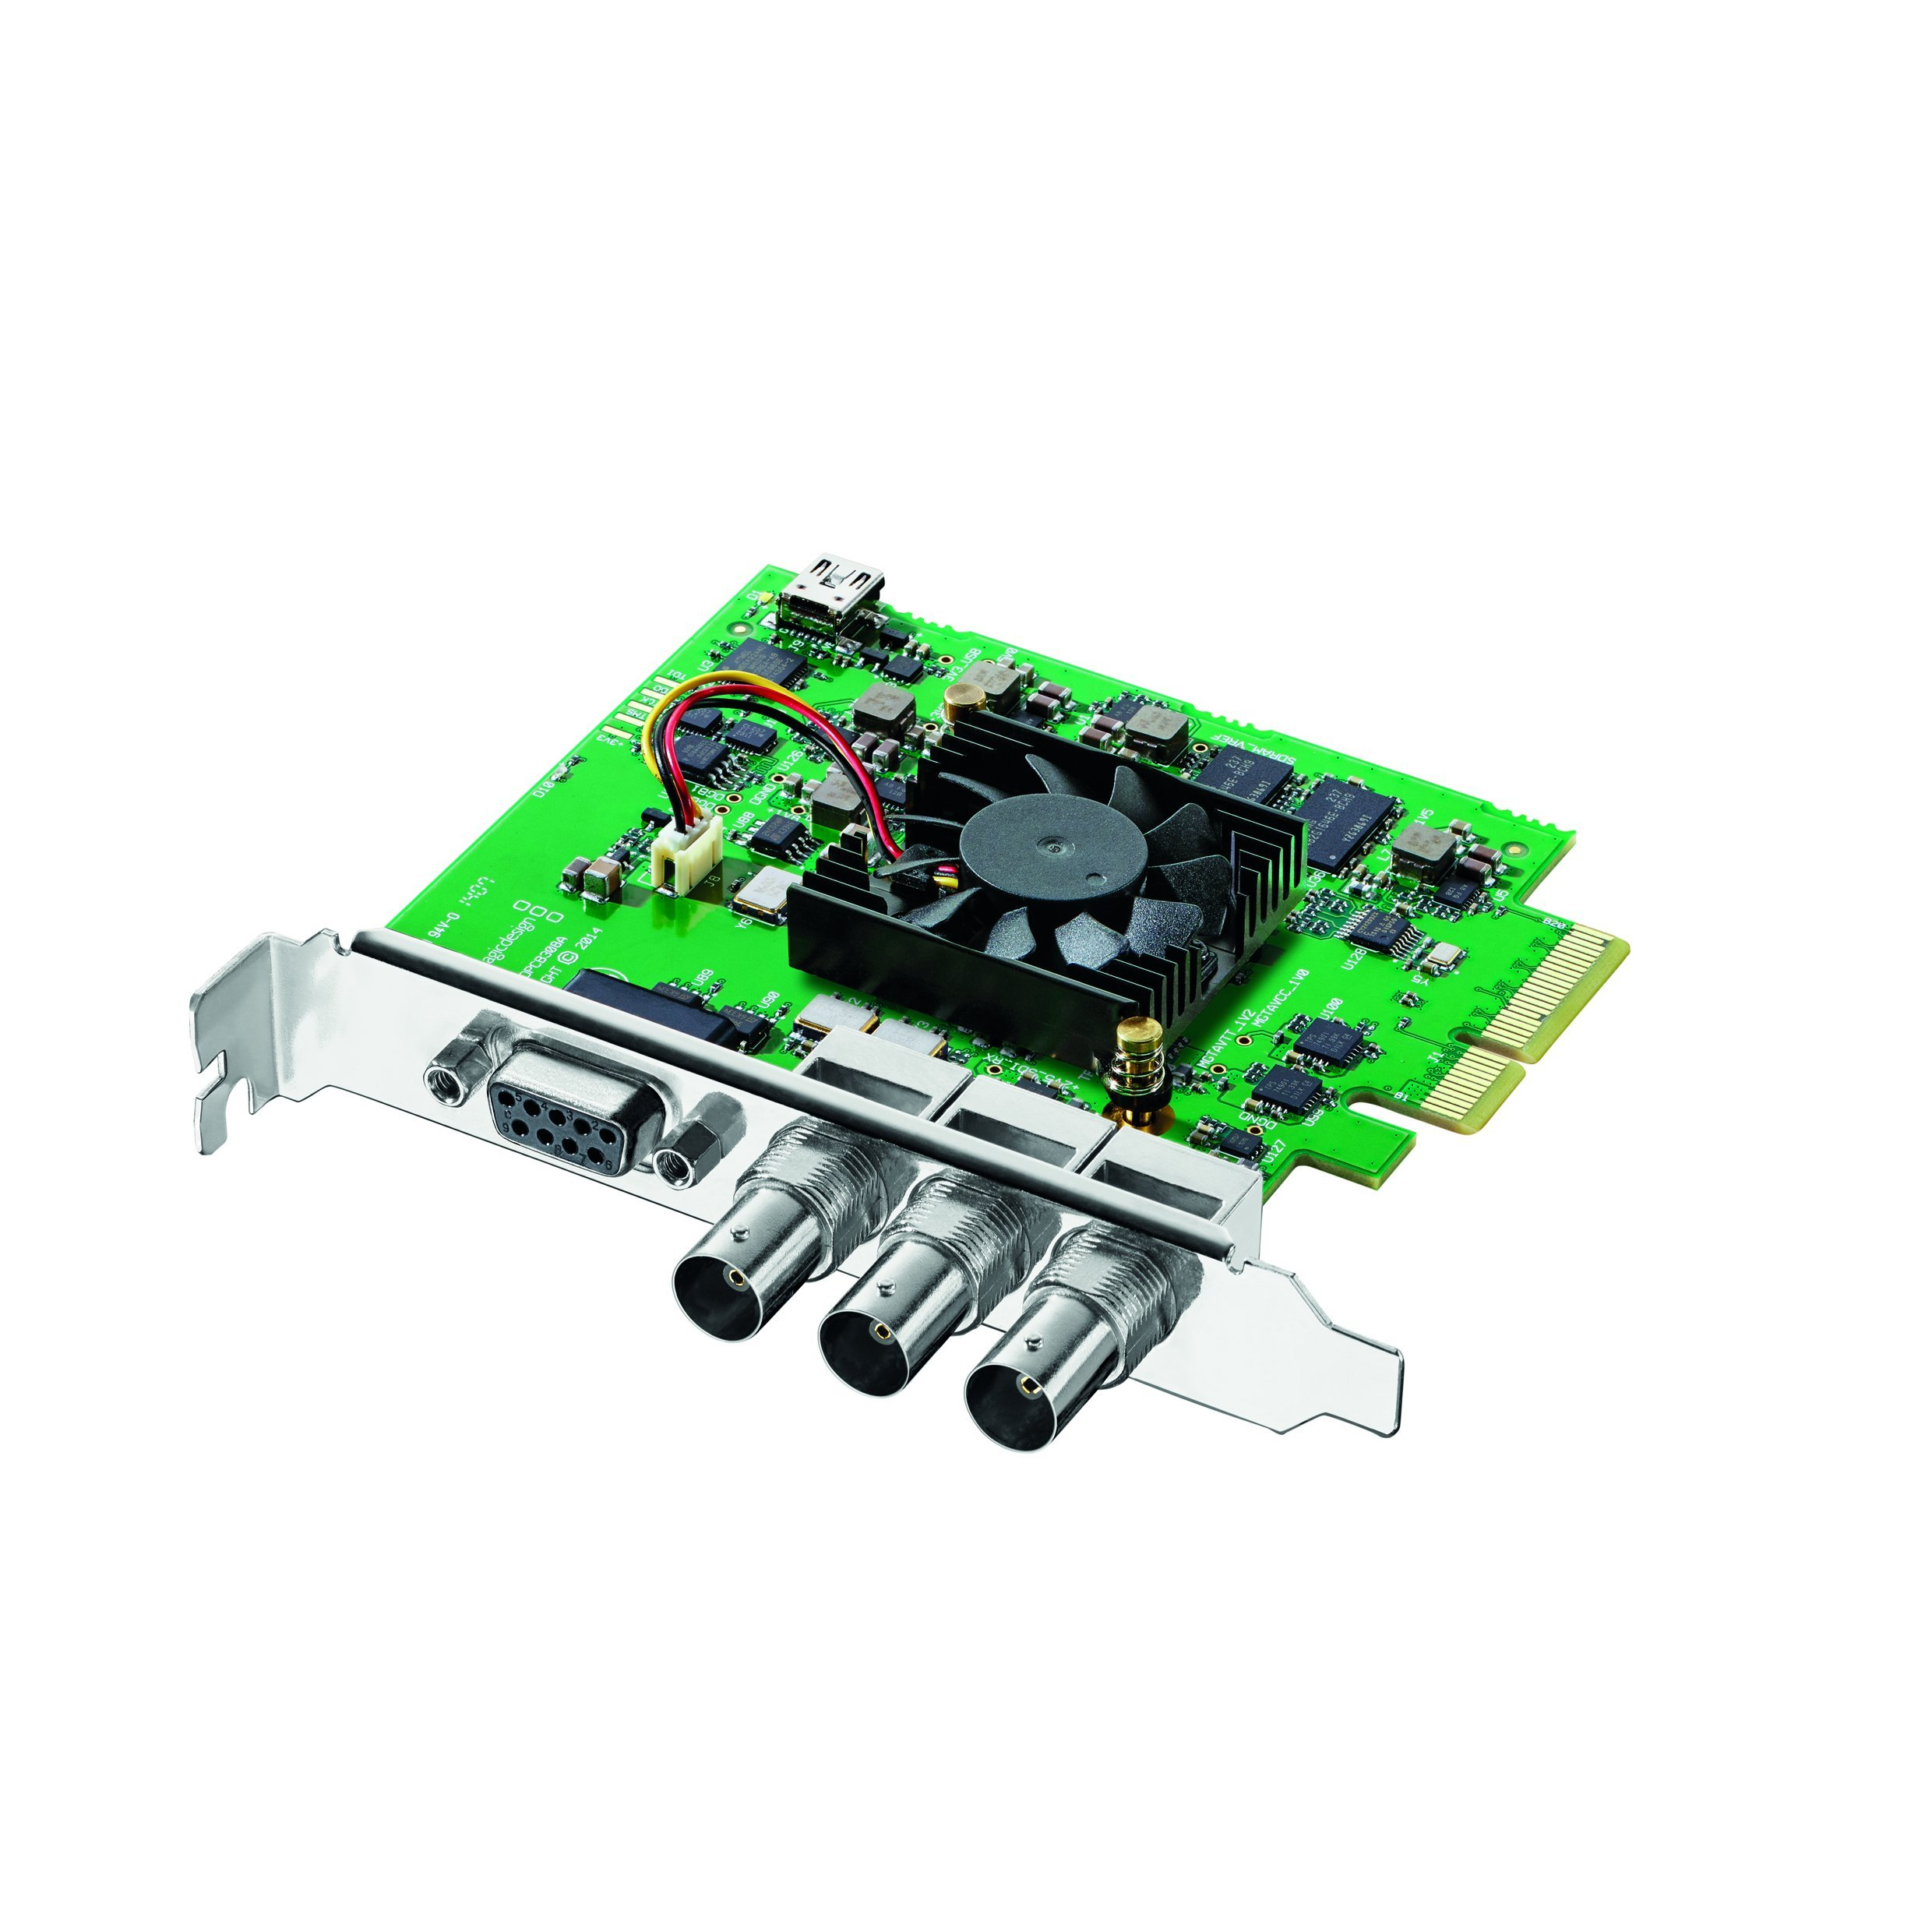 Blackmagic Design Decklink SDI 4K Capture & Playback Card by Blackmagic Design